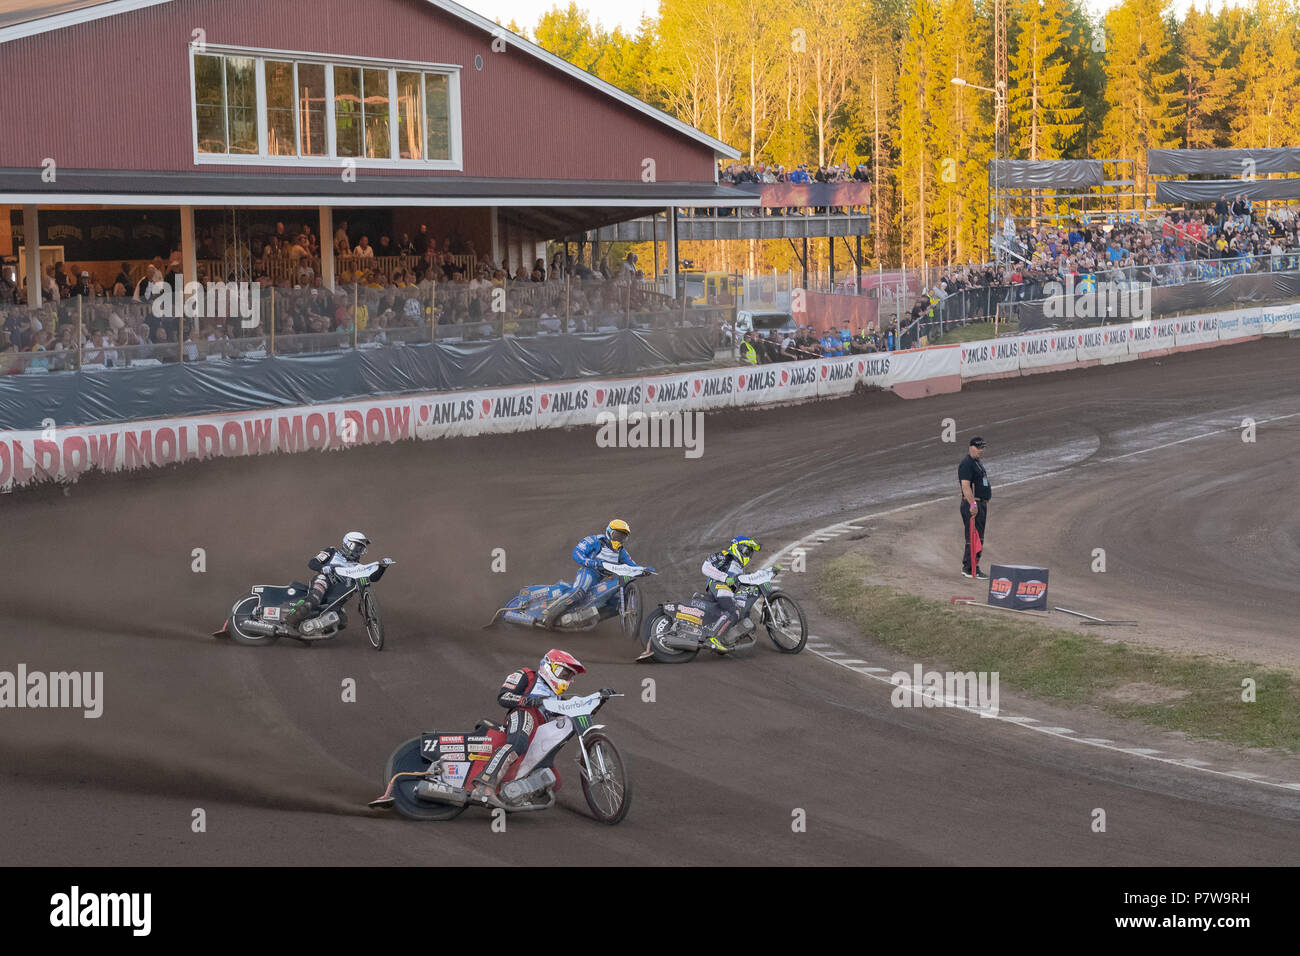 Hallstavik, Sweden. 7 July 2018.  Finals at FIM Speedway Grand Prix at HZ Bygg Arena in Hallstavik. Credit: Stefan Holm/Alamy Live News - Stock Image